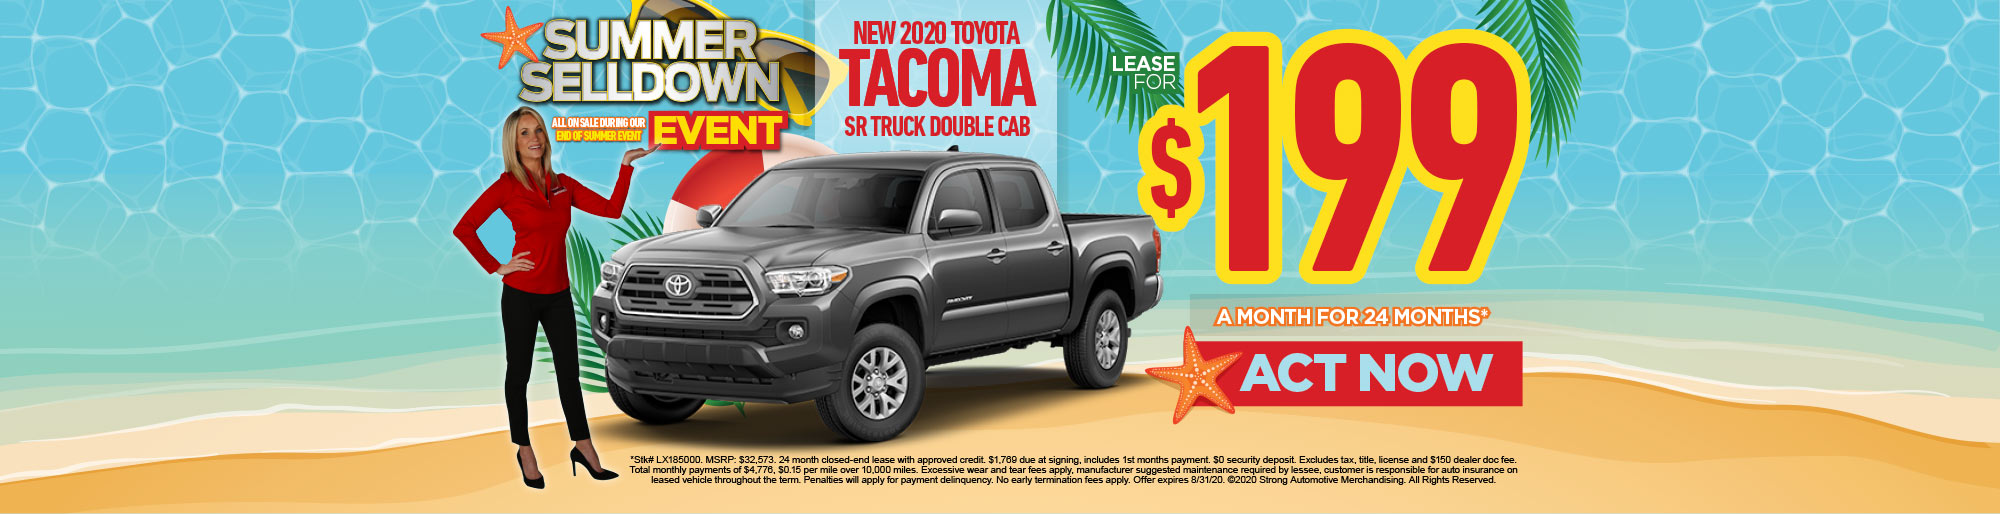 LEASE A NEW 2020 TACOMA SR TRUCK DOUBLE CAB FOR $199/MO** - ACT NOW